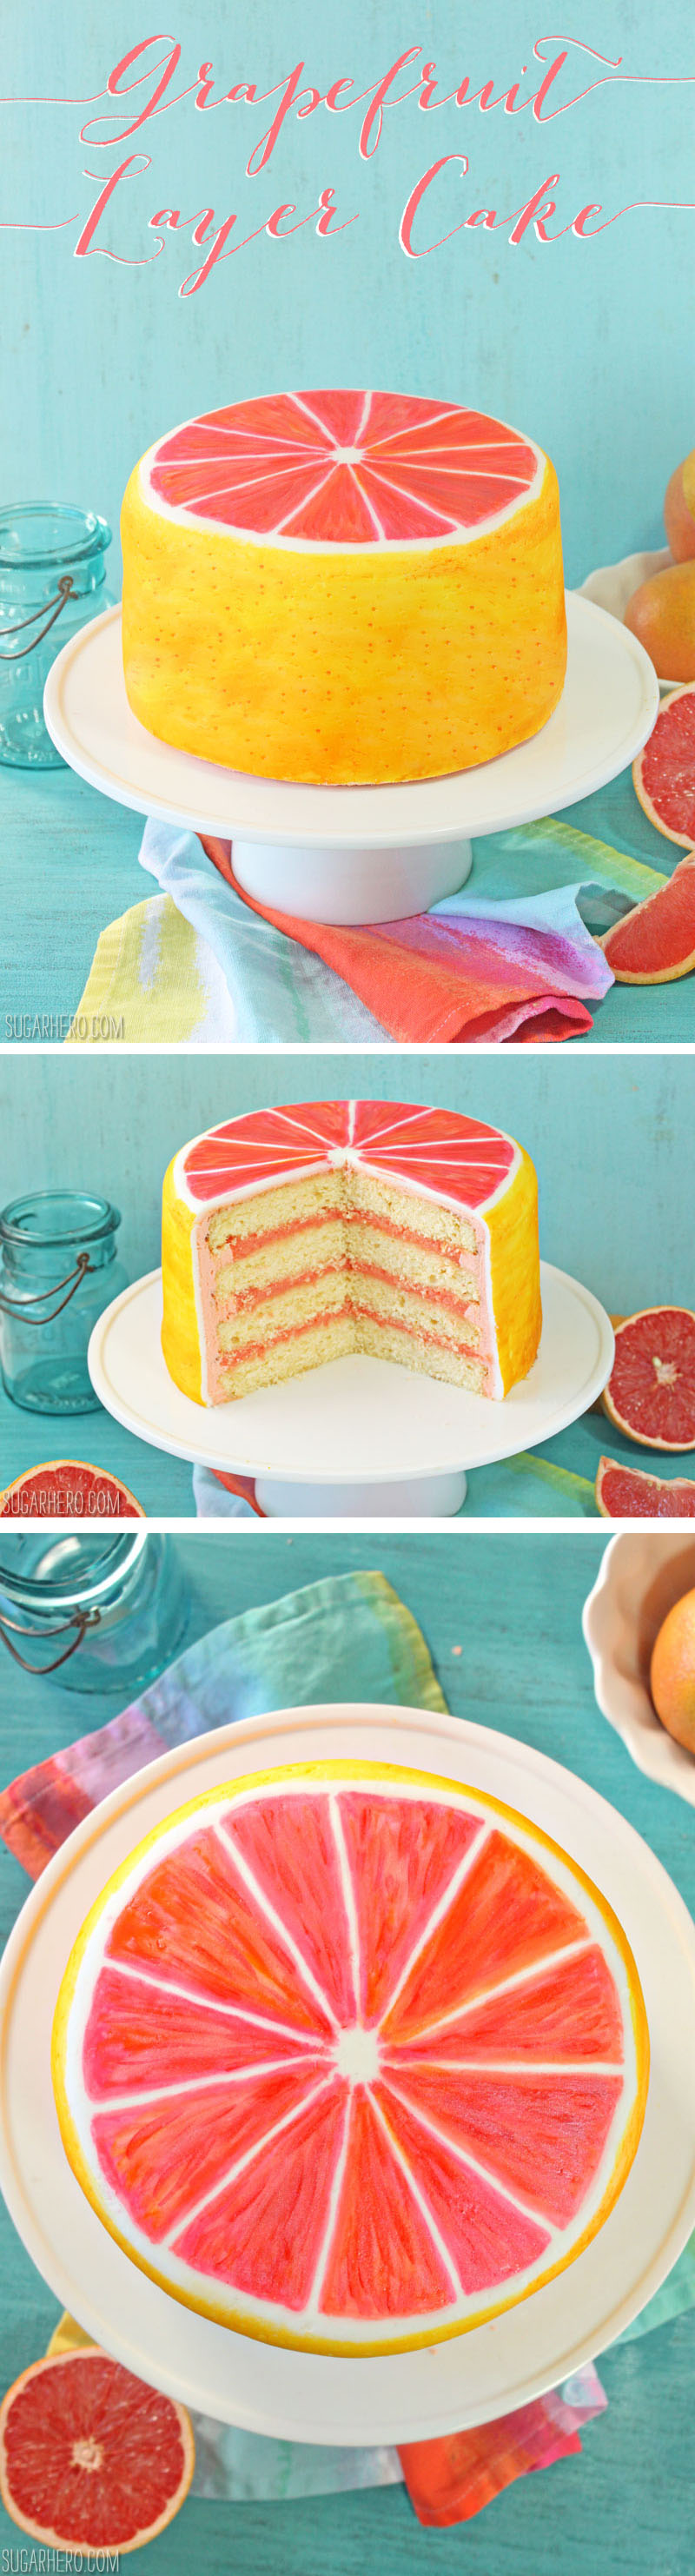 Grapefruit Layer Cake - with grapefruit cake, grapefruit curd, and grapefruit buttercream! | From SugarHero.com